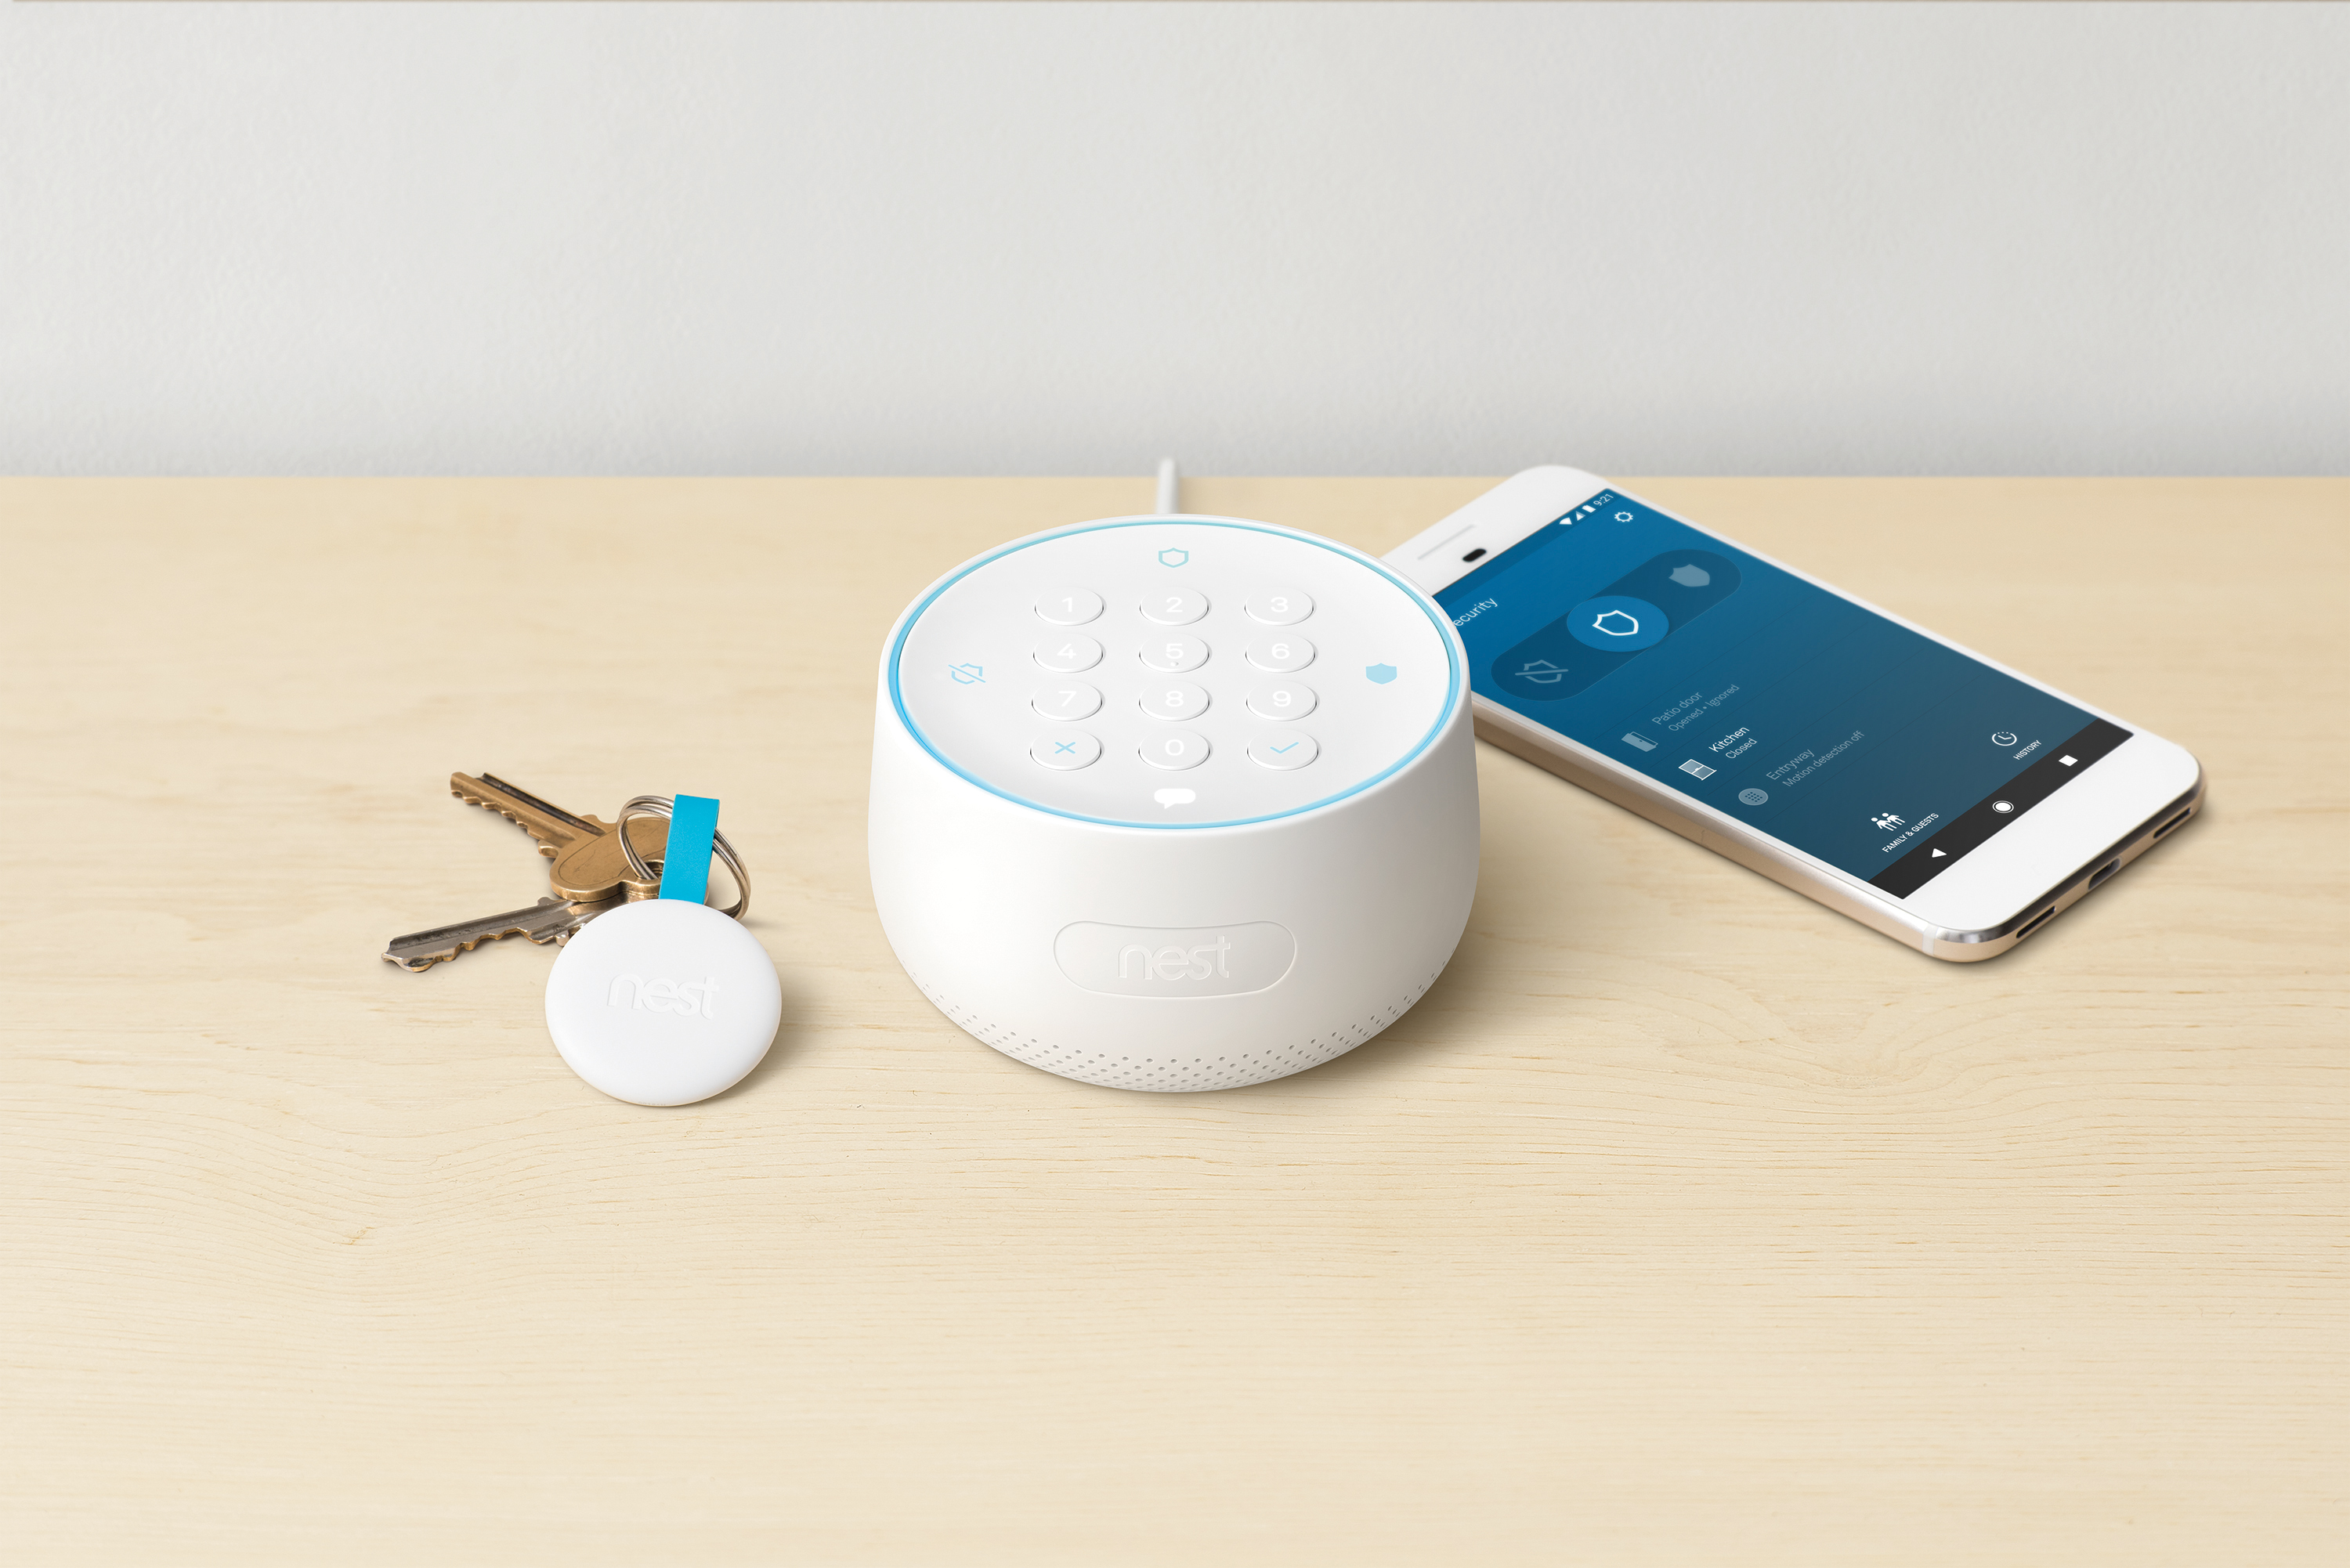 Nest Expands Into Home Security With First System Designed Wiring For Dummies Full Size